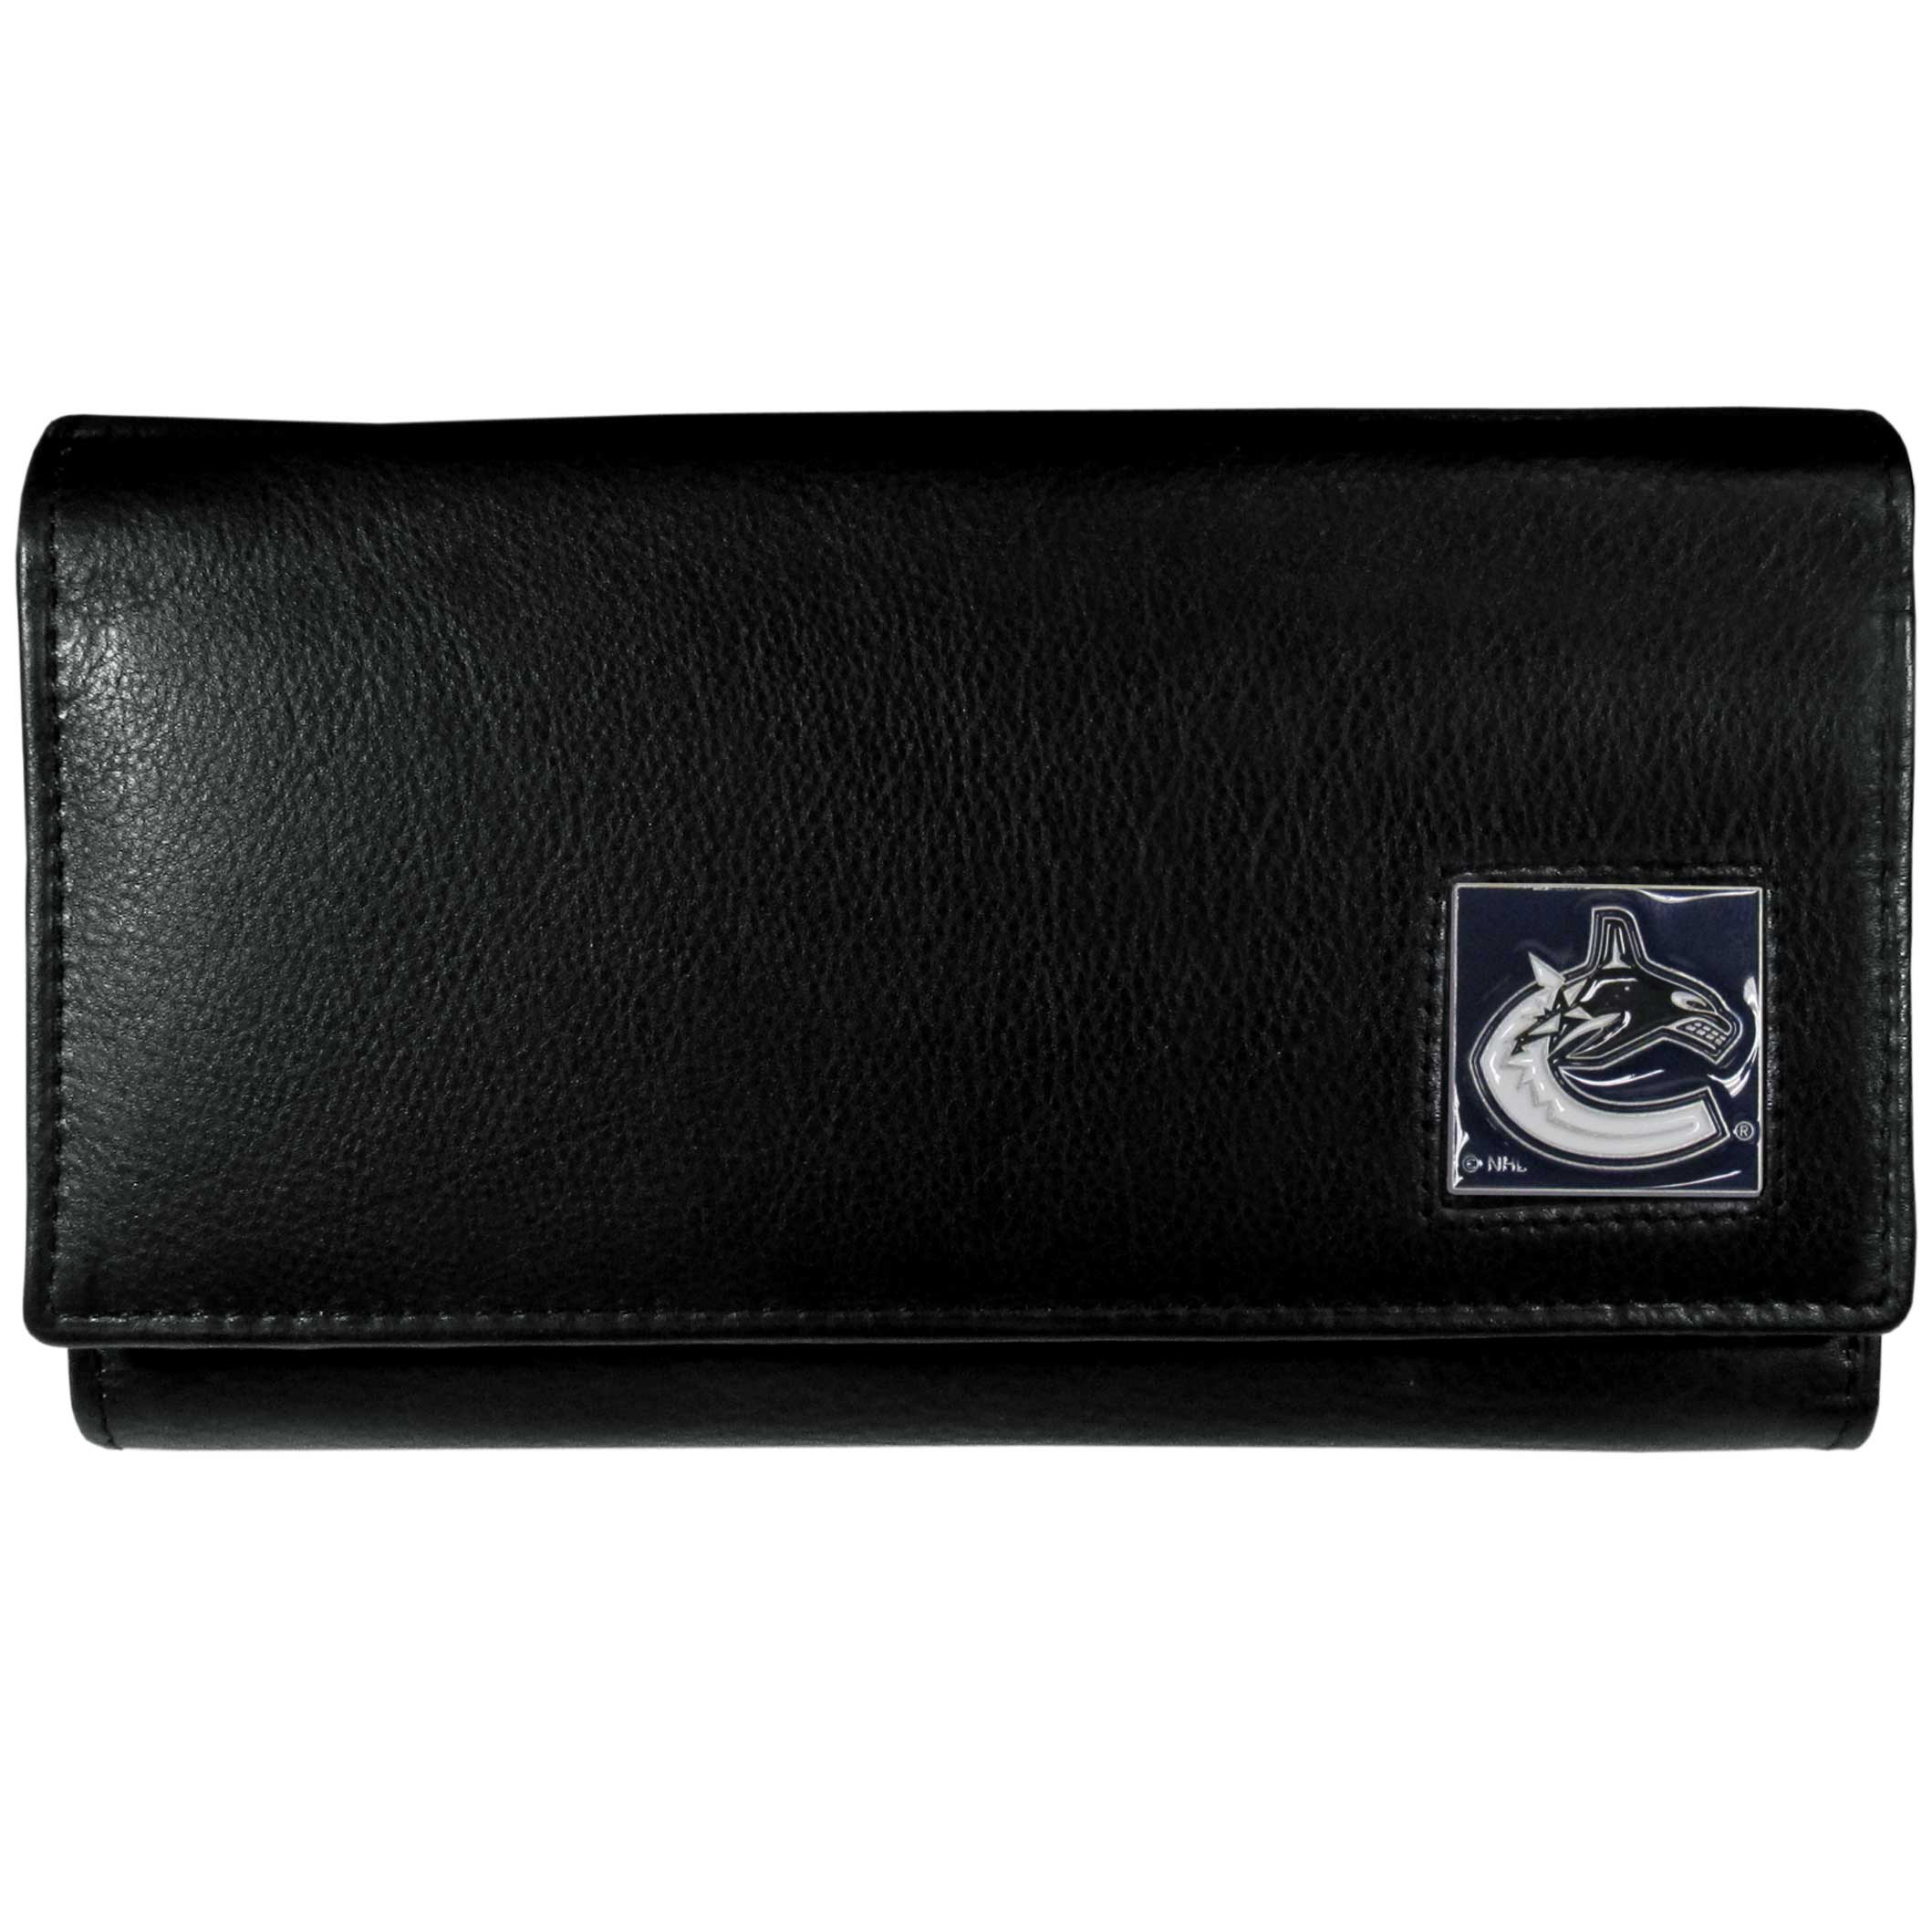 Vancouver Canucks® Leather Women's Wallet - This genuine leather women's pocketbook features 9 credit card slots, a windowed ID slot, spacious front pocket, inner pocket and zippered coin pocket. The front of the pocketbook has a hand painted metal square with the Vancouver Canucks® primary logo.